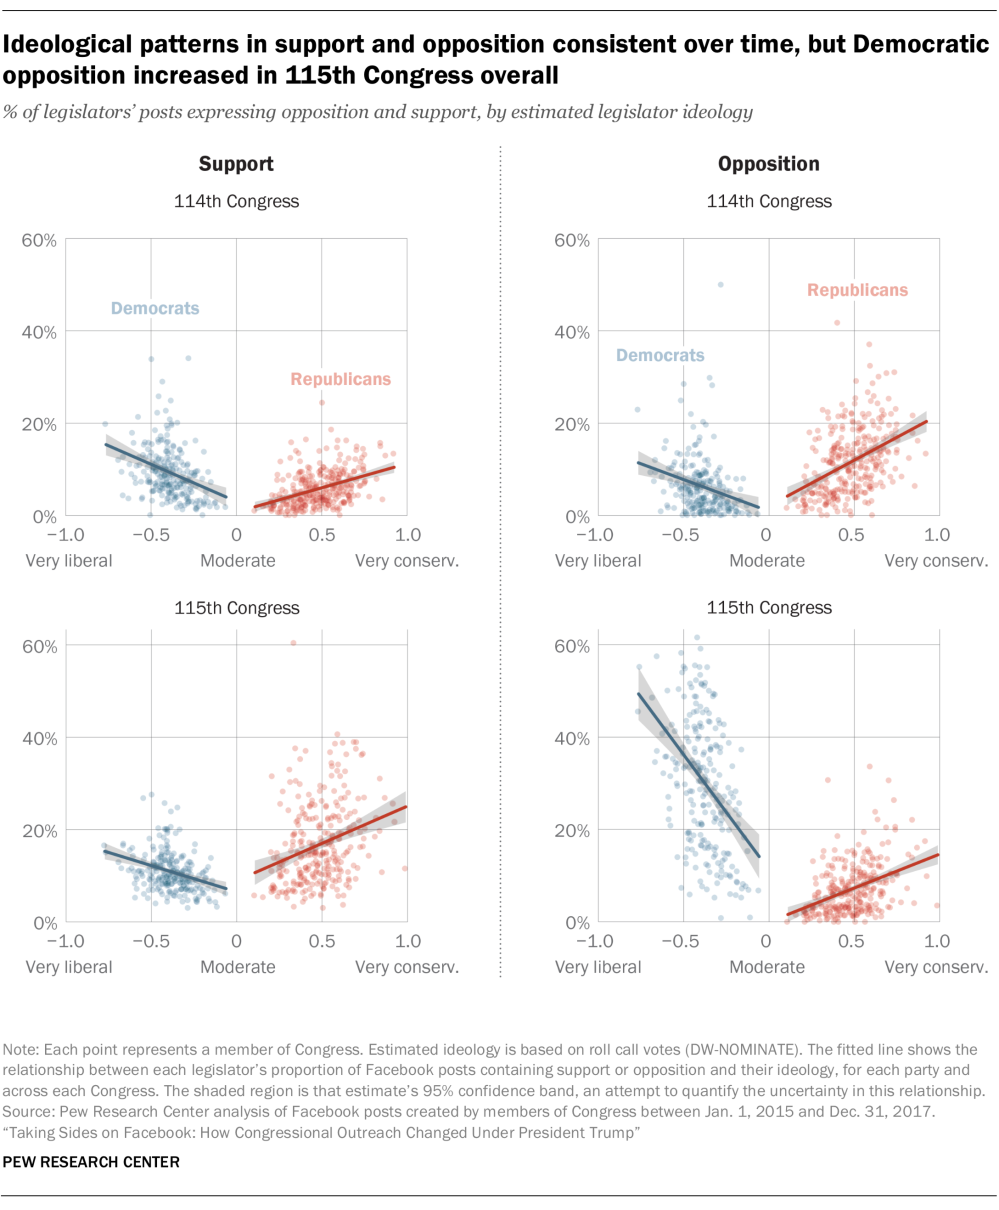 medium resolution of ideological patterns in support and opposition consistent over time but democratic opposition increased in 115th